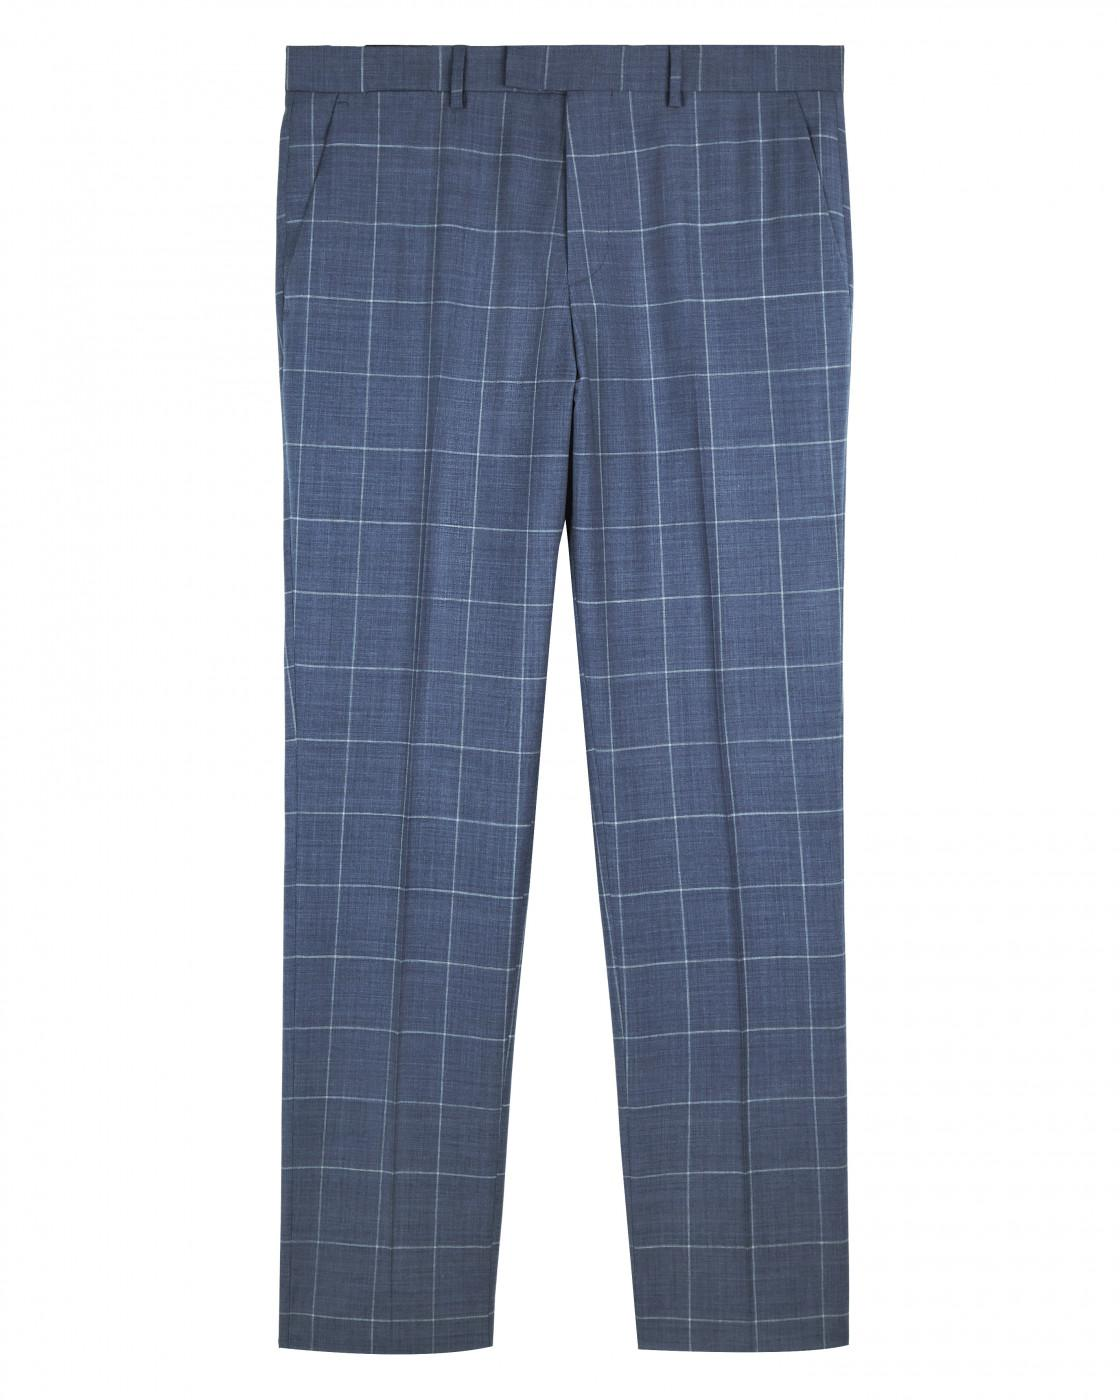 Tailored Large Windowpane Suit Trouser By Austin Reed Thread